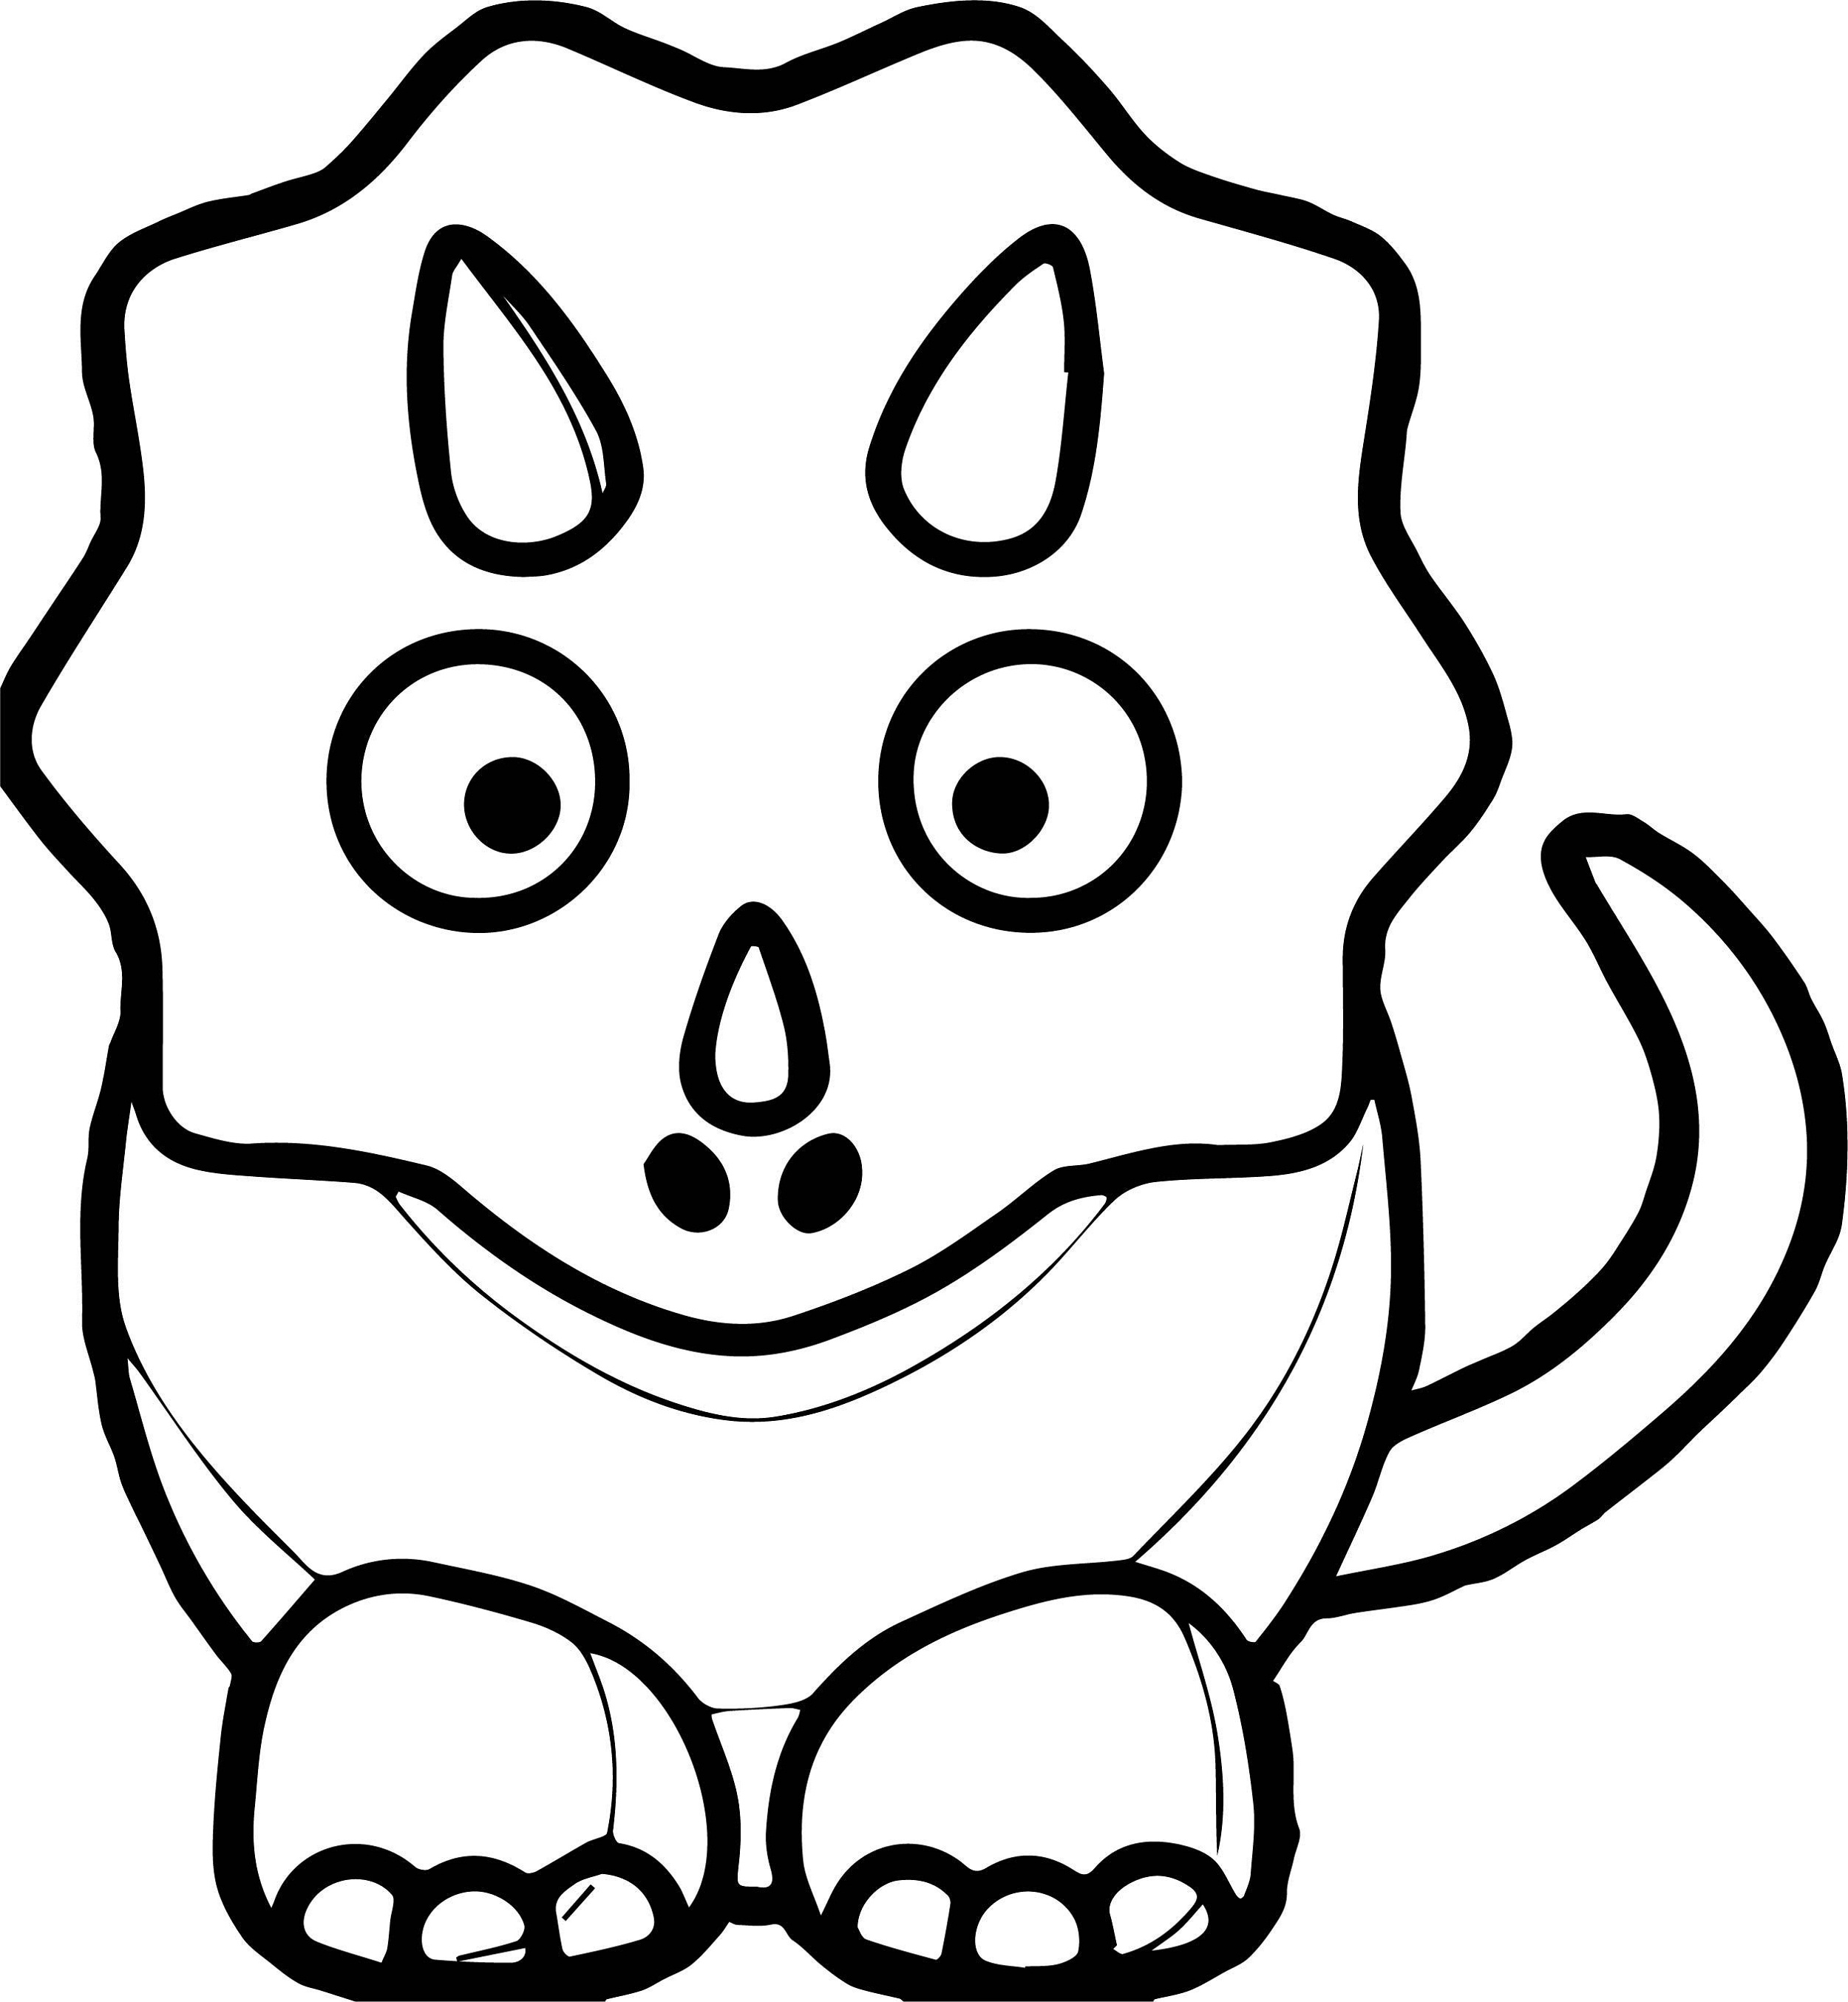 dinosaur coloring pages for kids printable dinosaur coloring pages for kids cool2bkids kids coloring pages for dinosaur